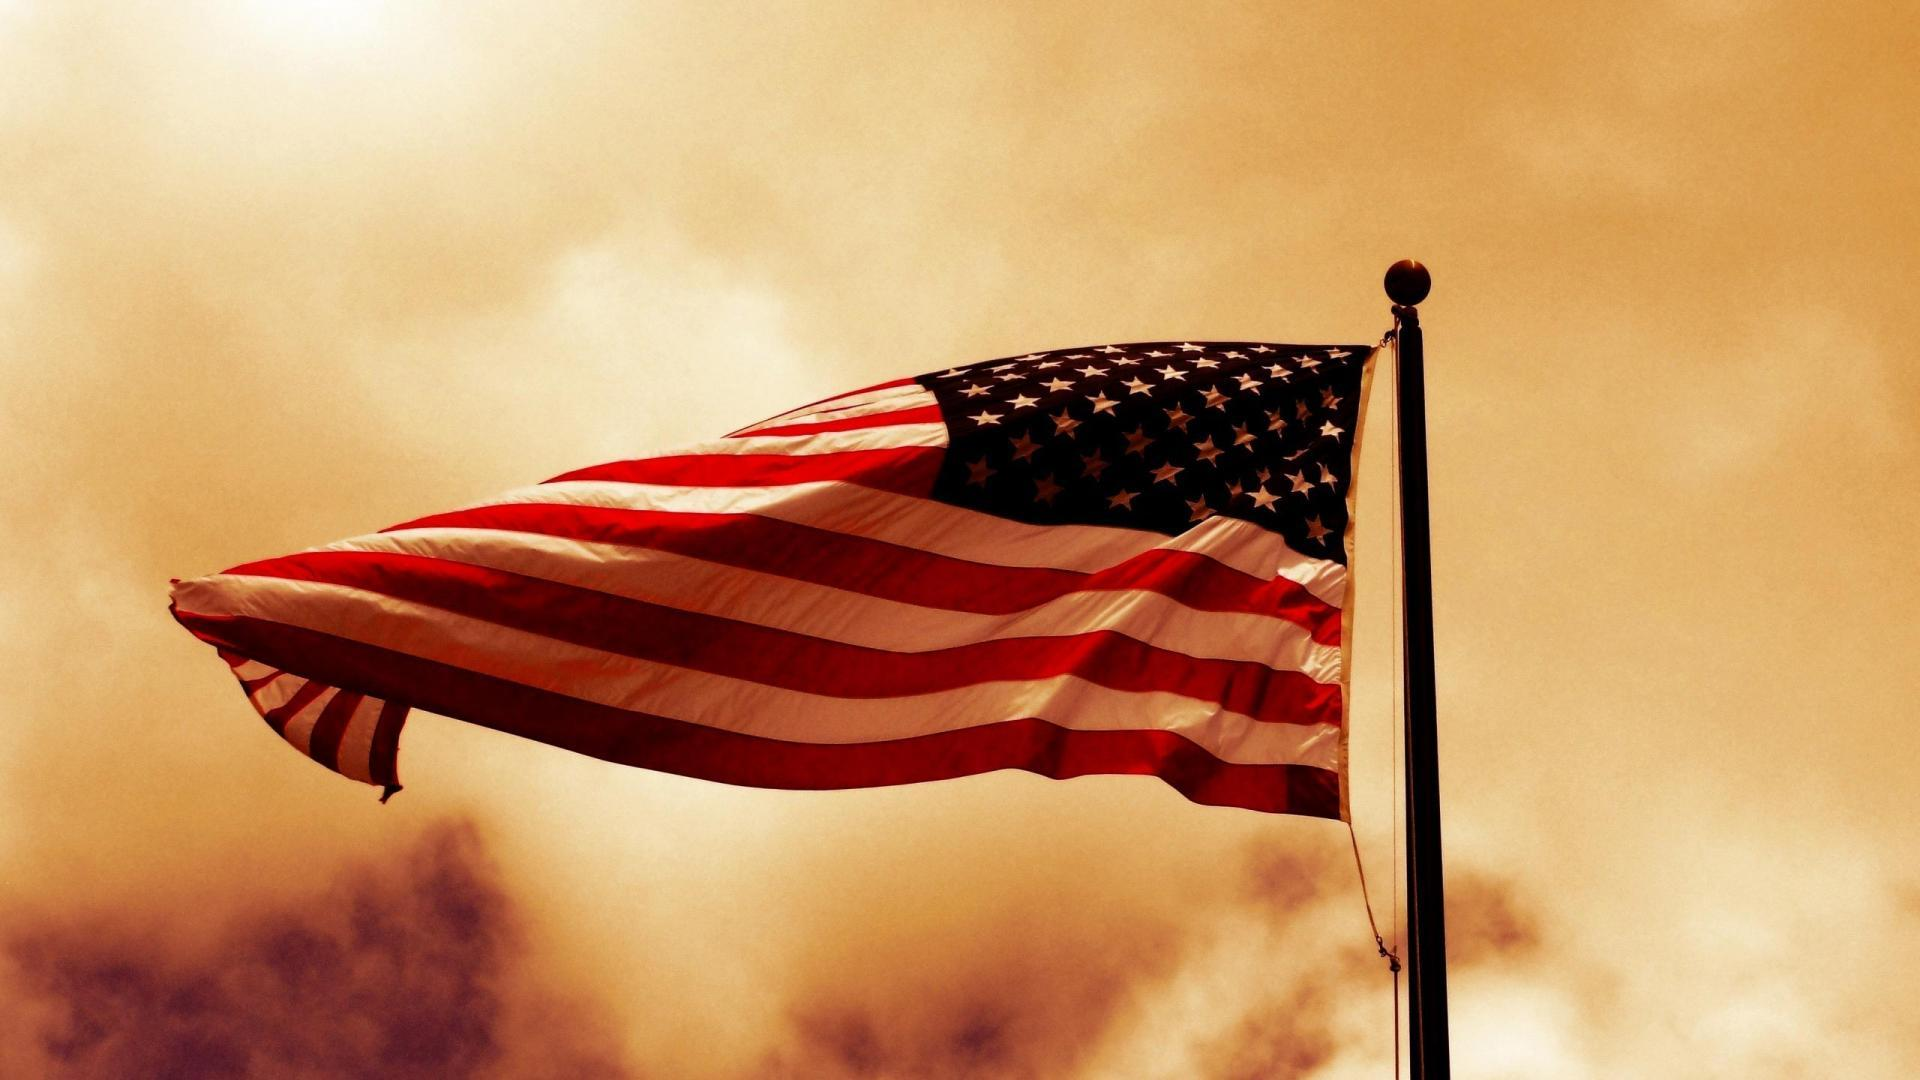 American Flag Wallpaper 1080p « Desktop Background Wallpapers HD